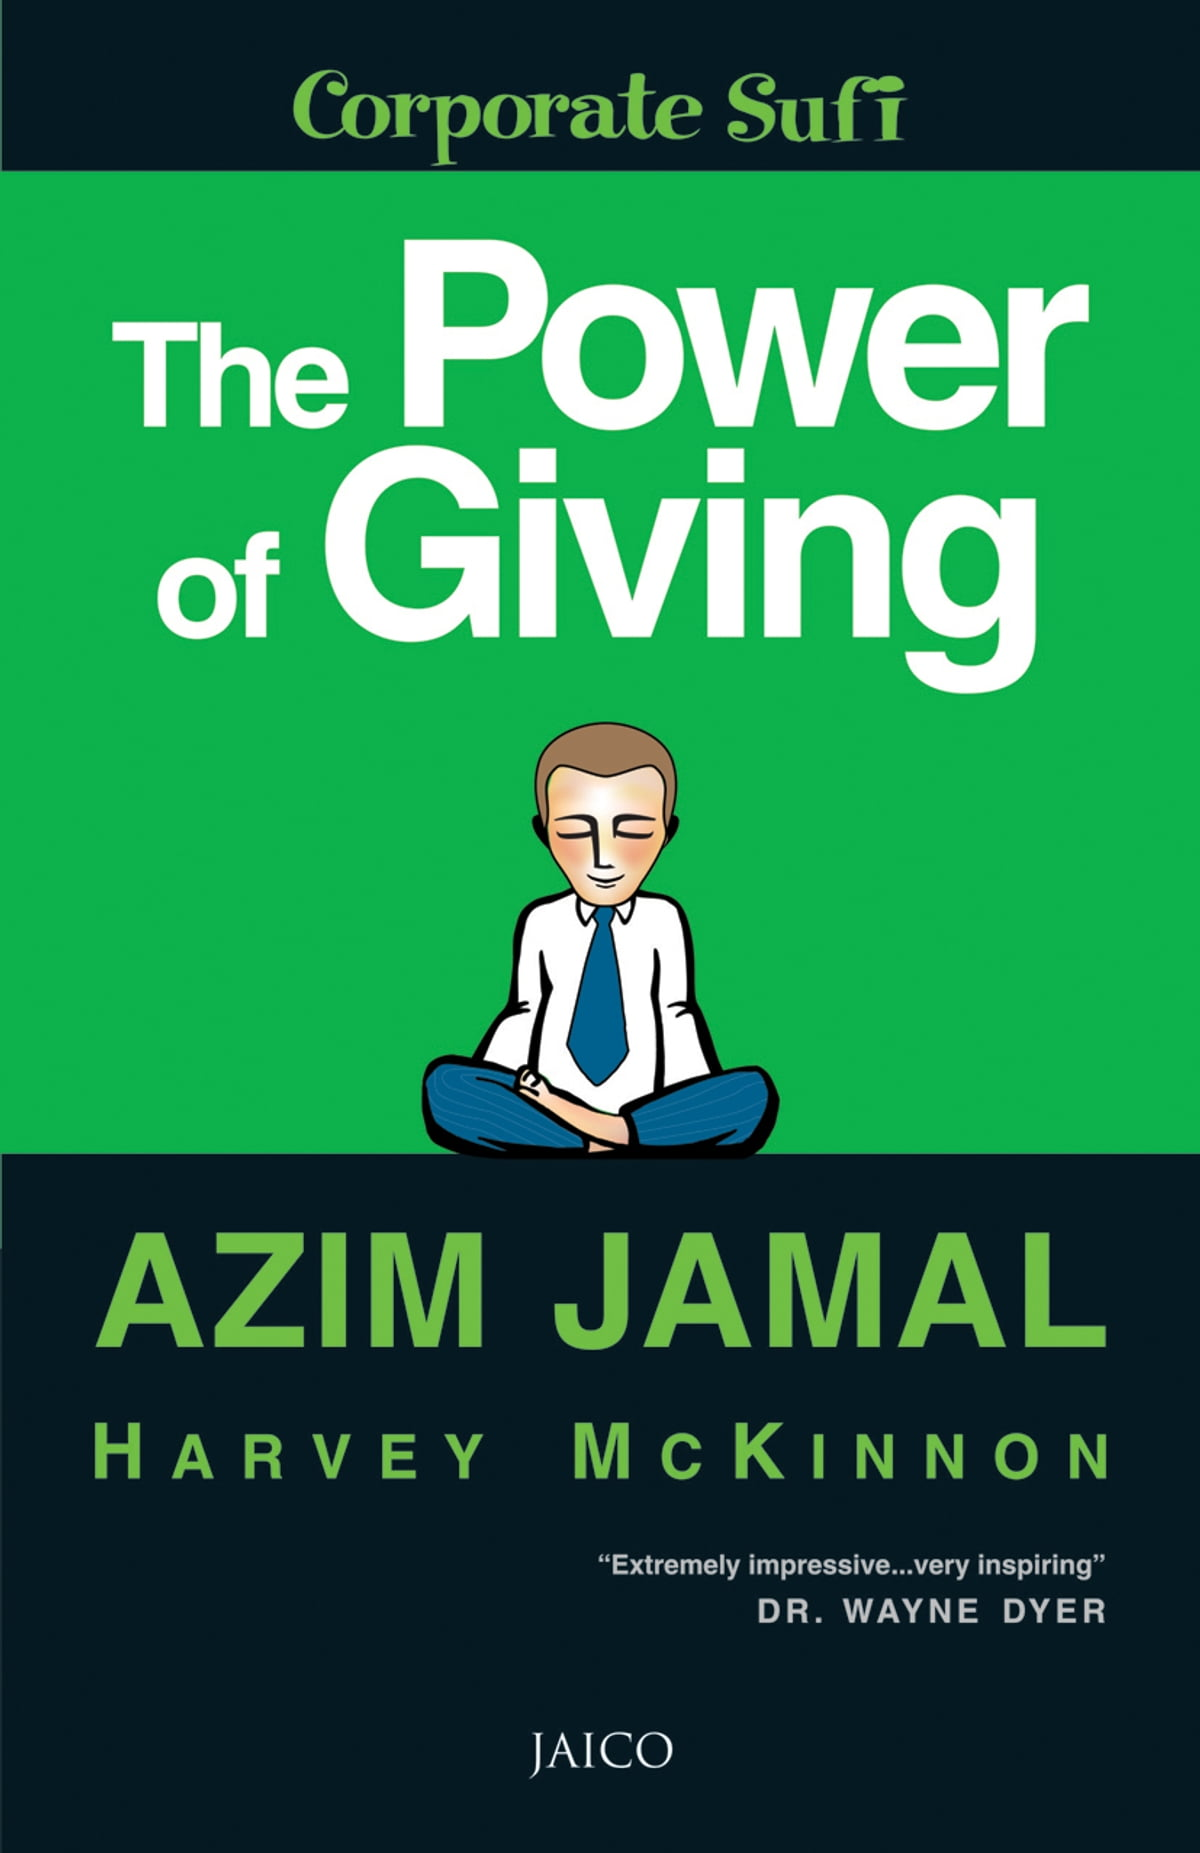 Watch The Power of Giving video